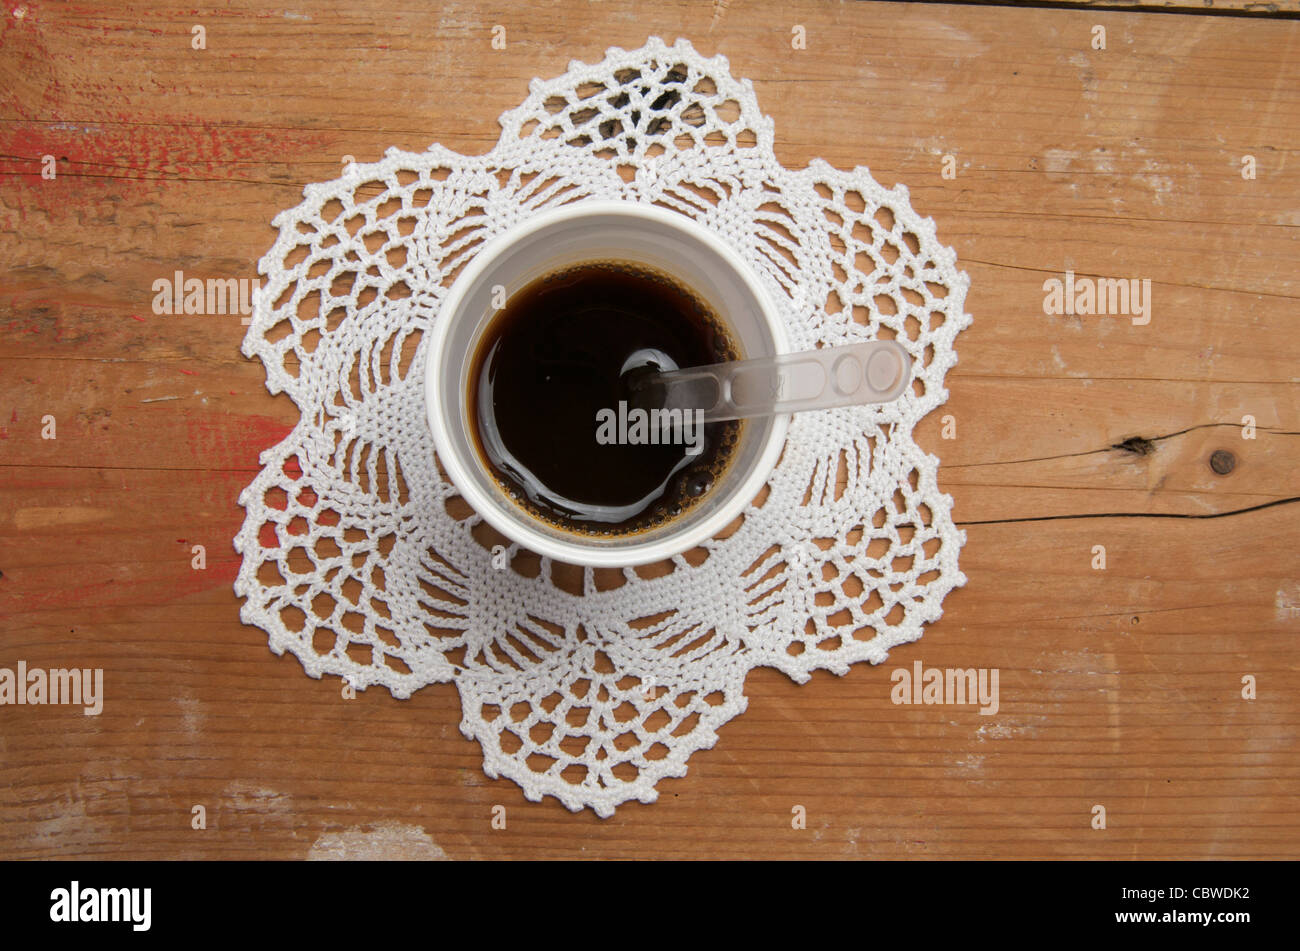 Disposable coffee cup on a place mat. - Stock Image